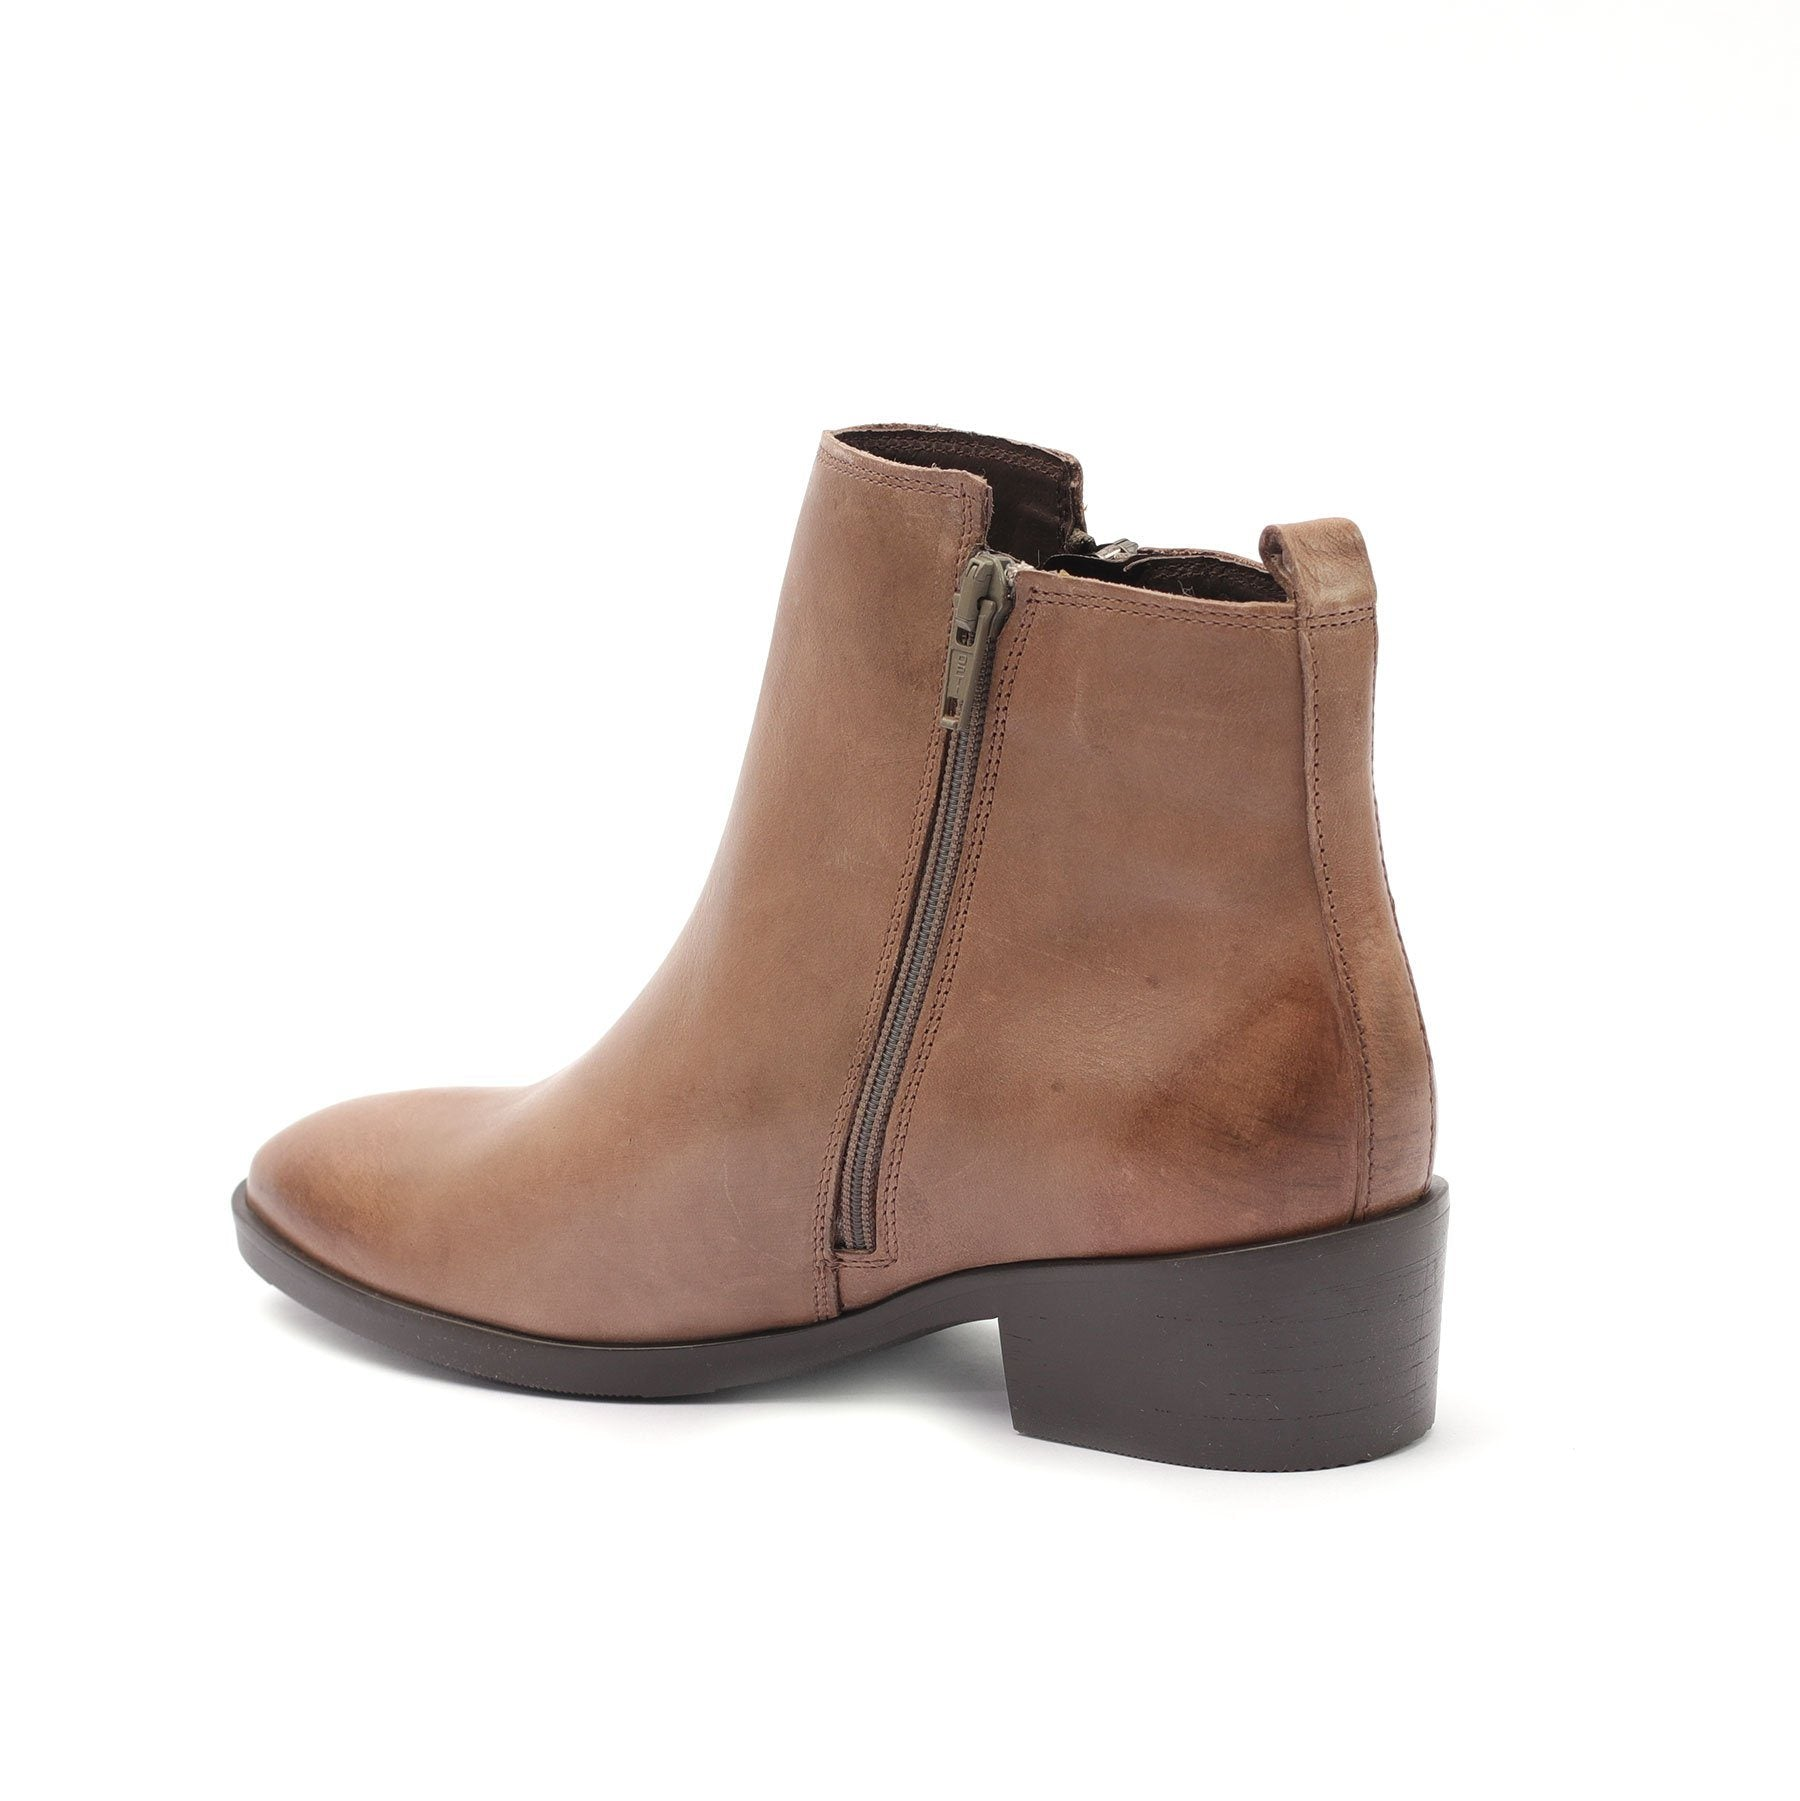 Botine piele naturala, dama - 341 bej  box - Clasicor Outlet